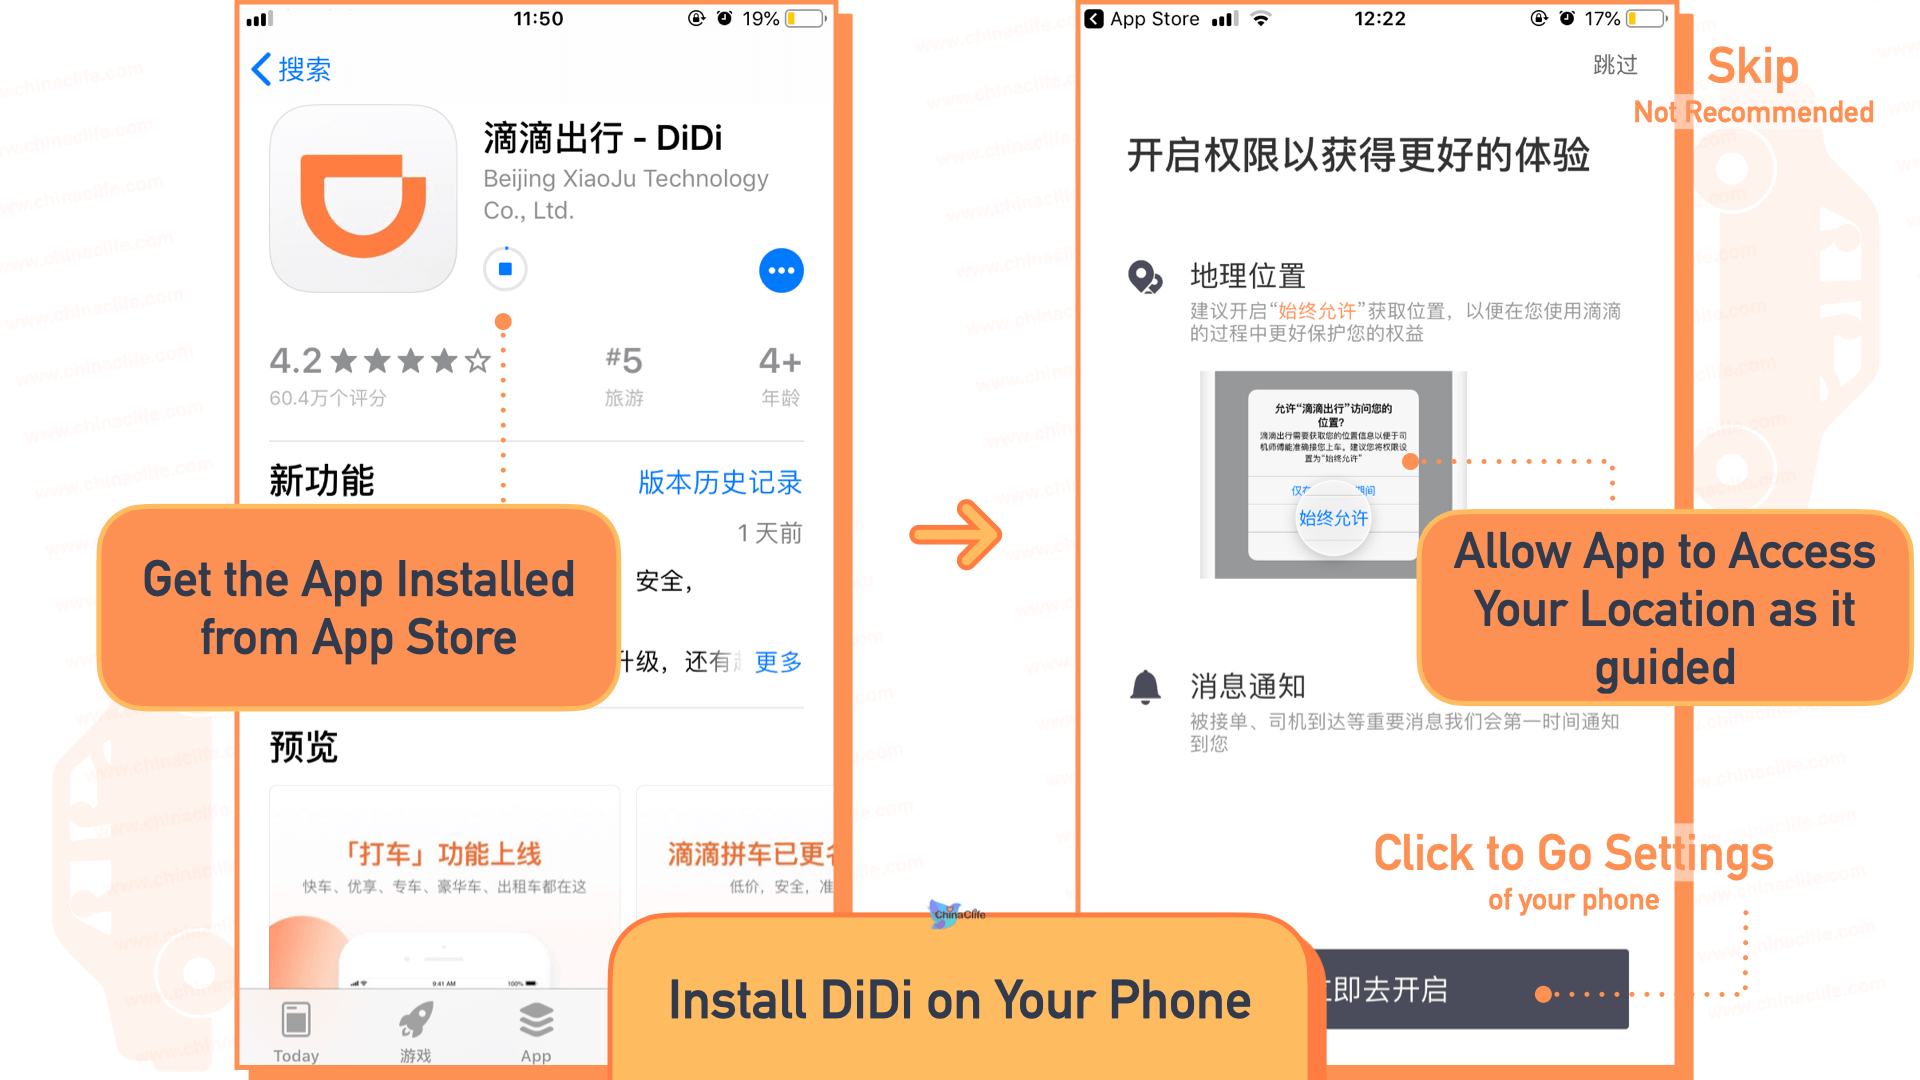 Install DiDi on Your Phone